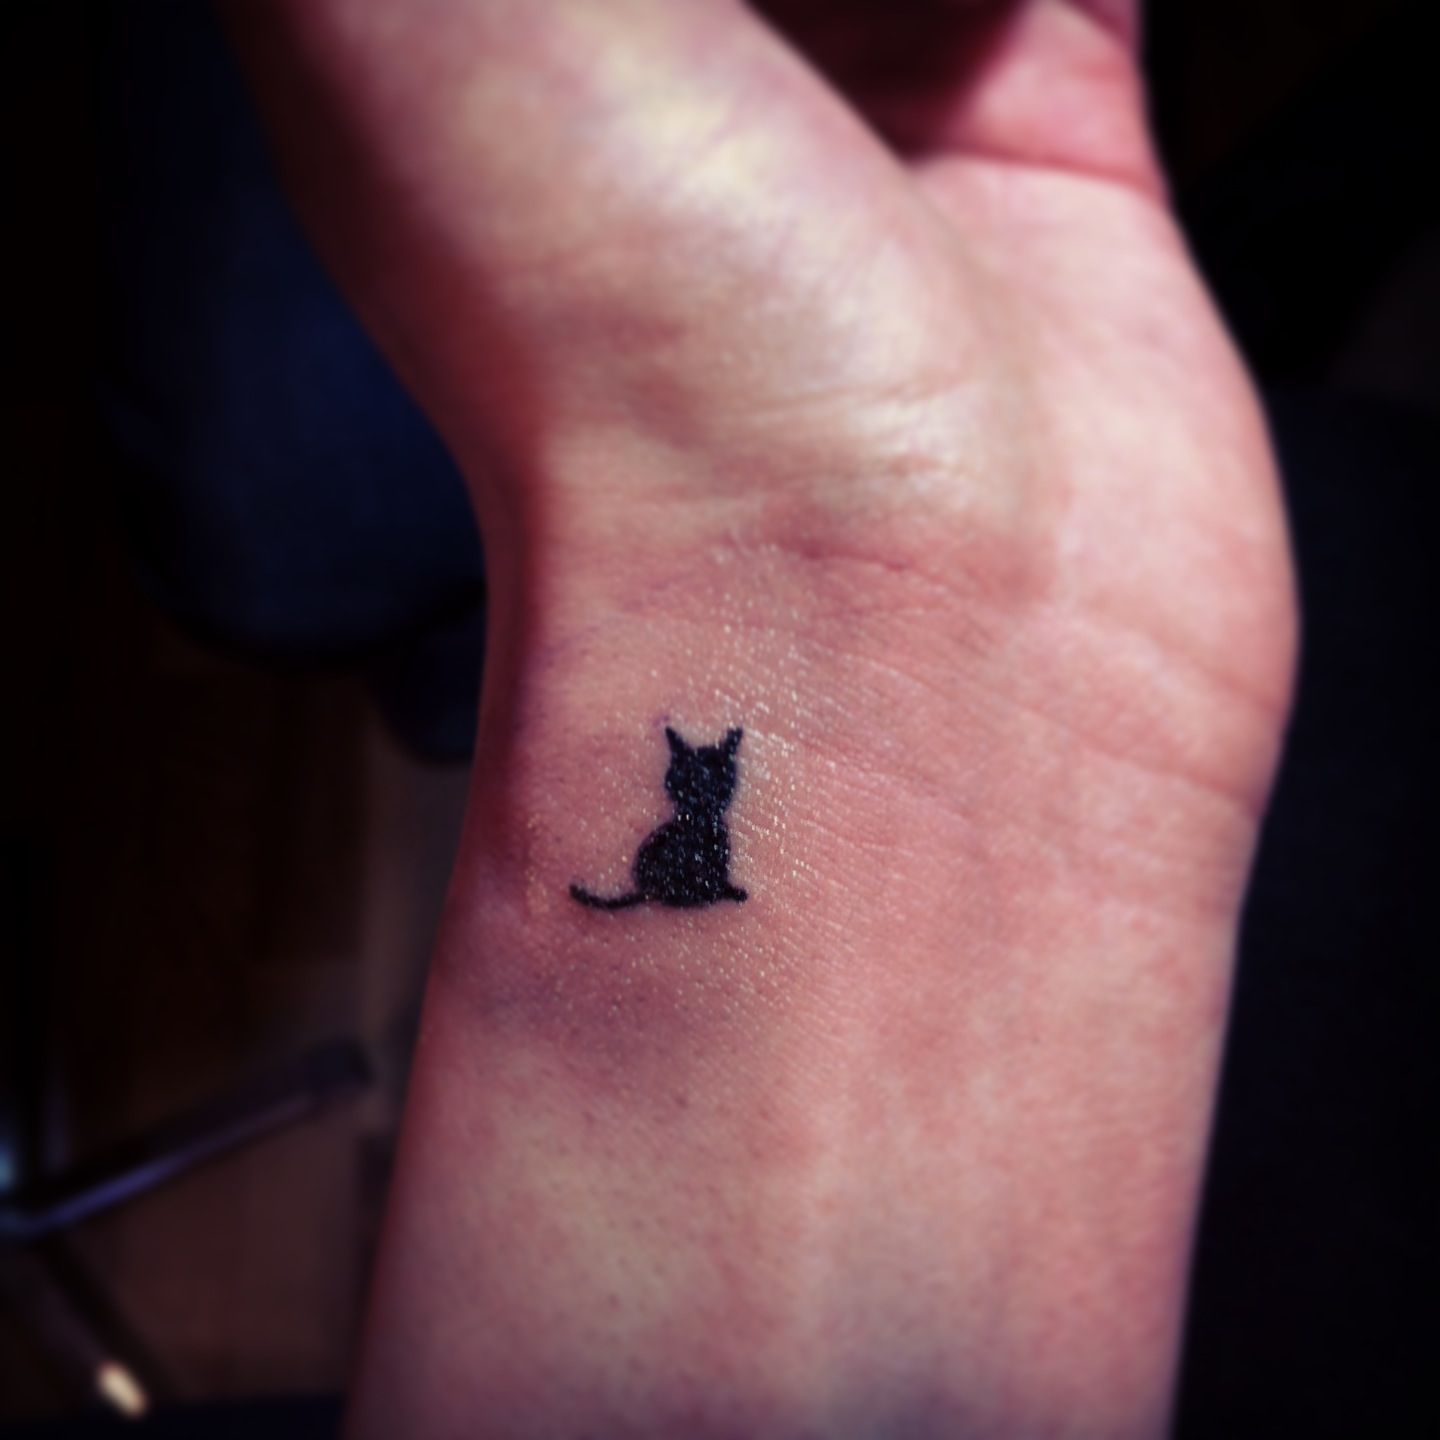 Tattoo ideas small cute my kitty cat tattoo i think behind the ear in honor of my late baby